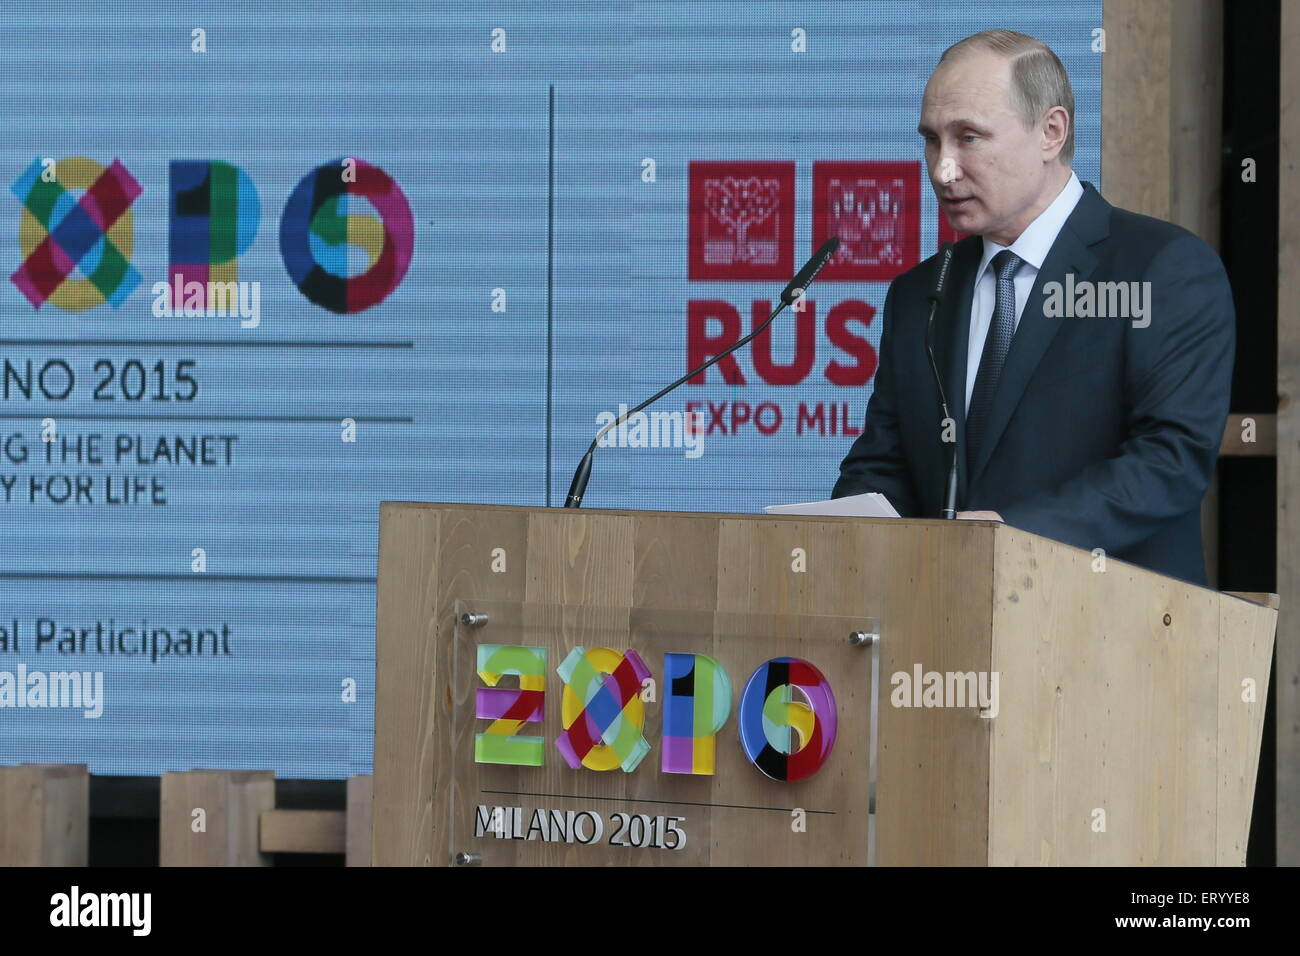 Milan, Italy. 10th June, 2015. Russia's president Vladimir Putin speaks at the opening ceremony for the National - Stock Image